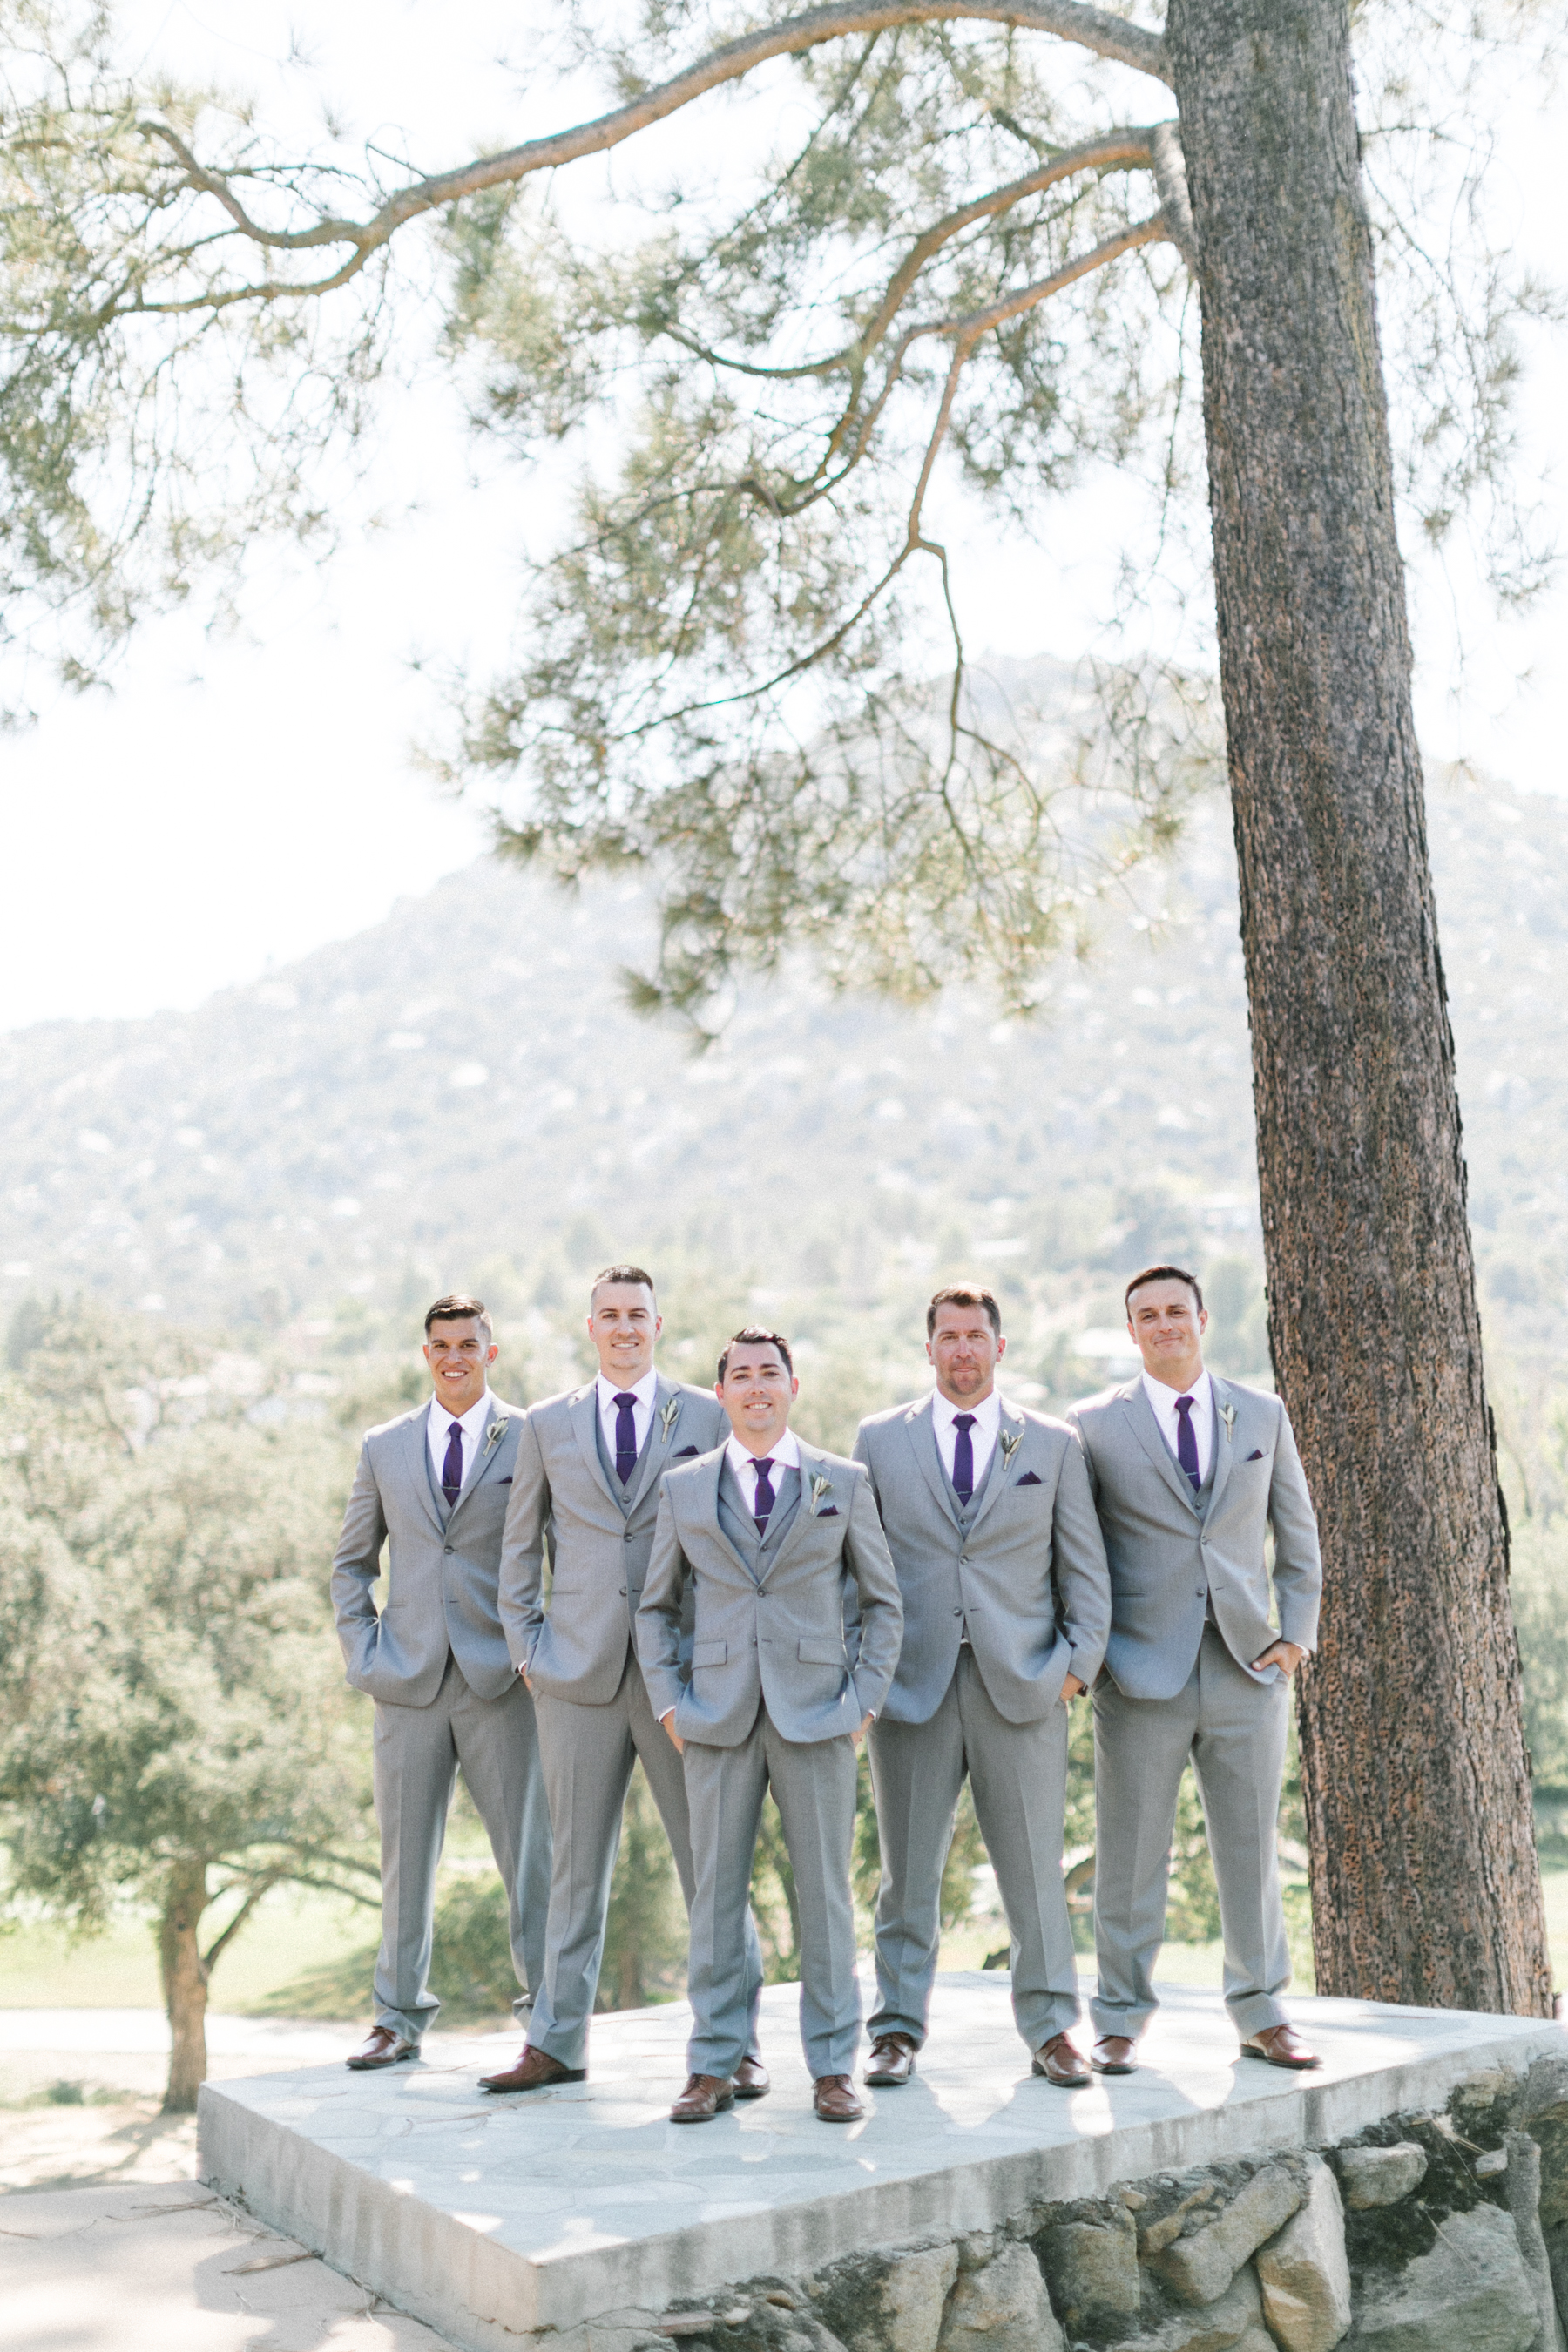 Jordan and Alex's Mt. Woodson Ramona Wedding Great Woodland Photography 8-31-19-14.jpg